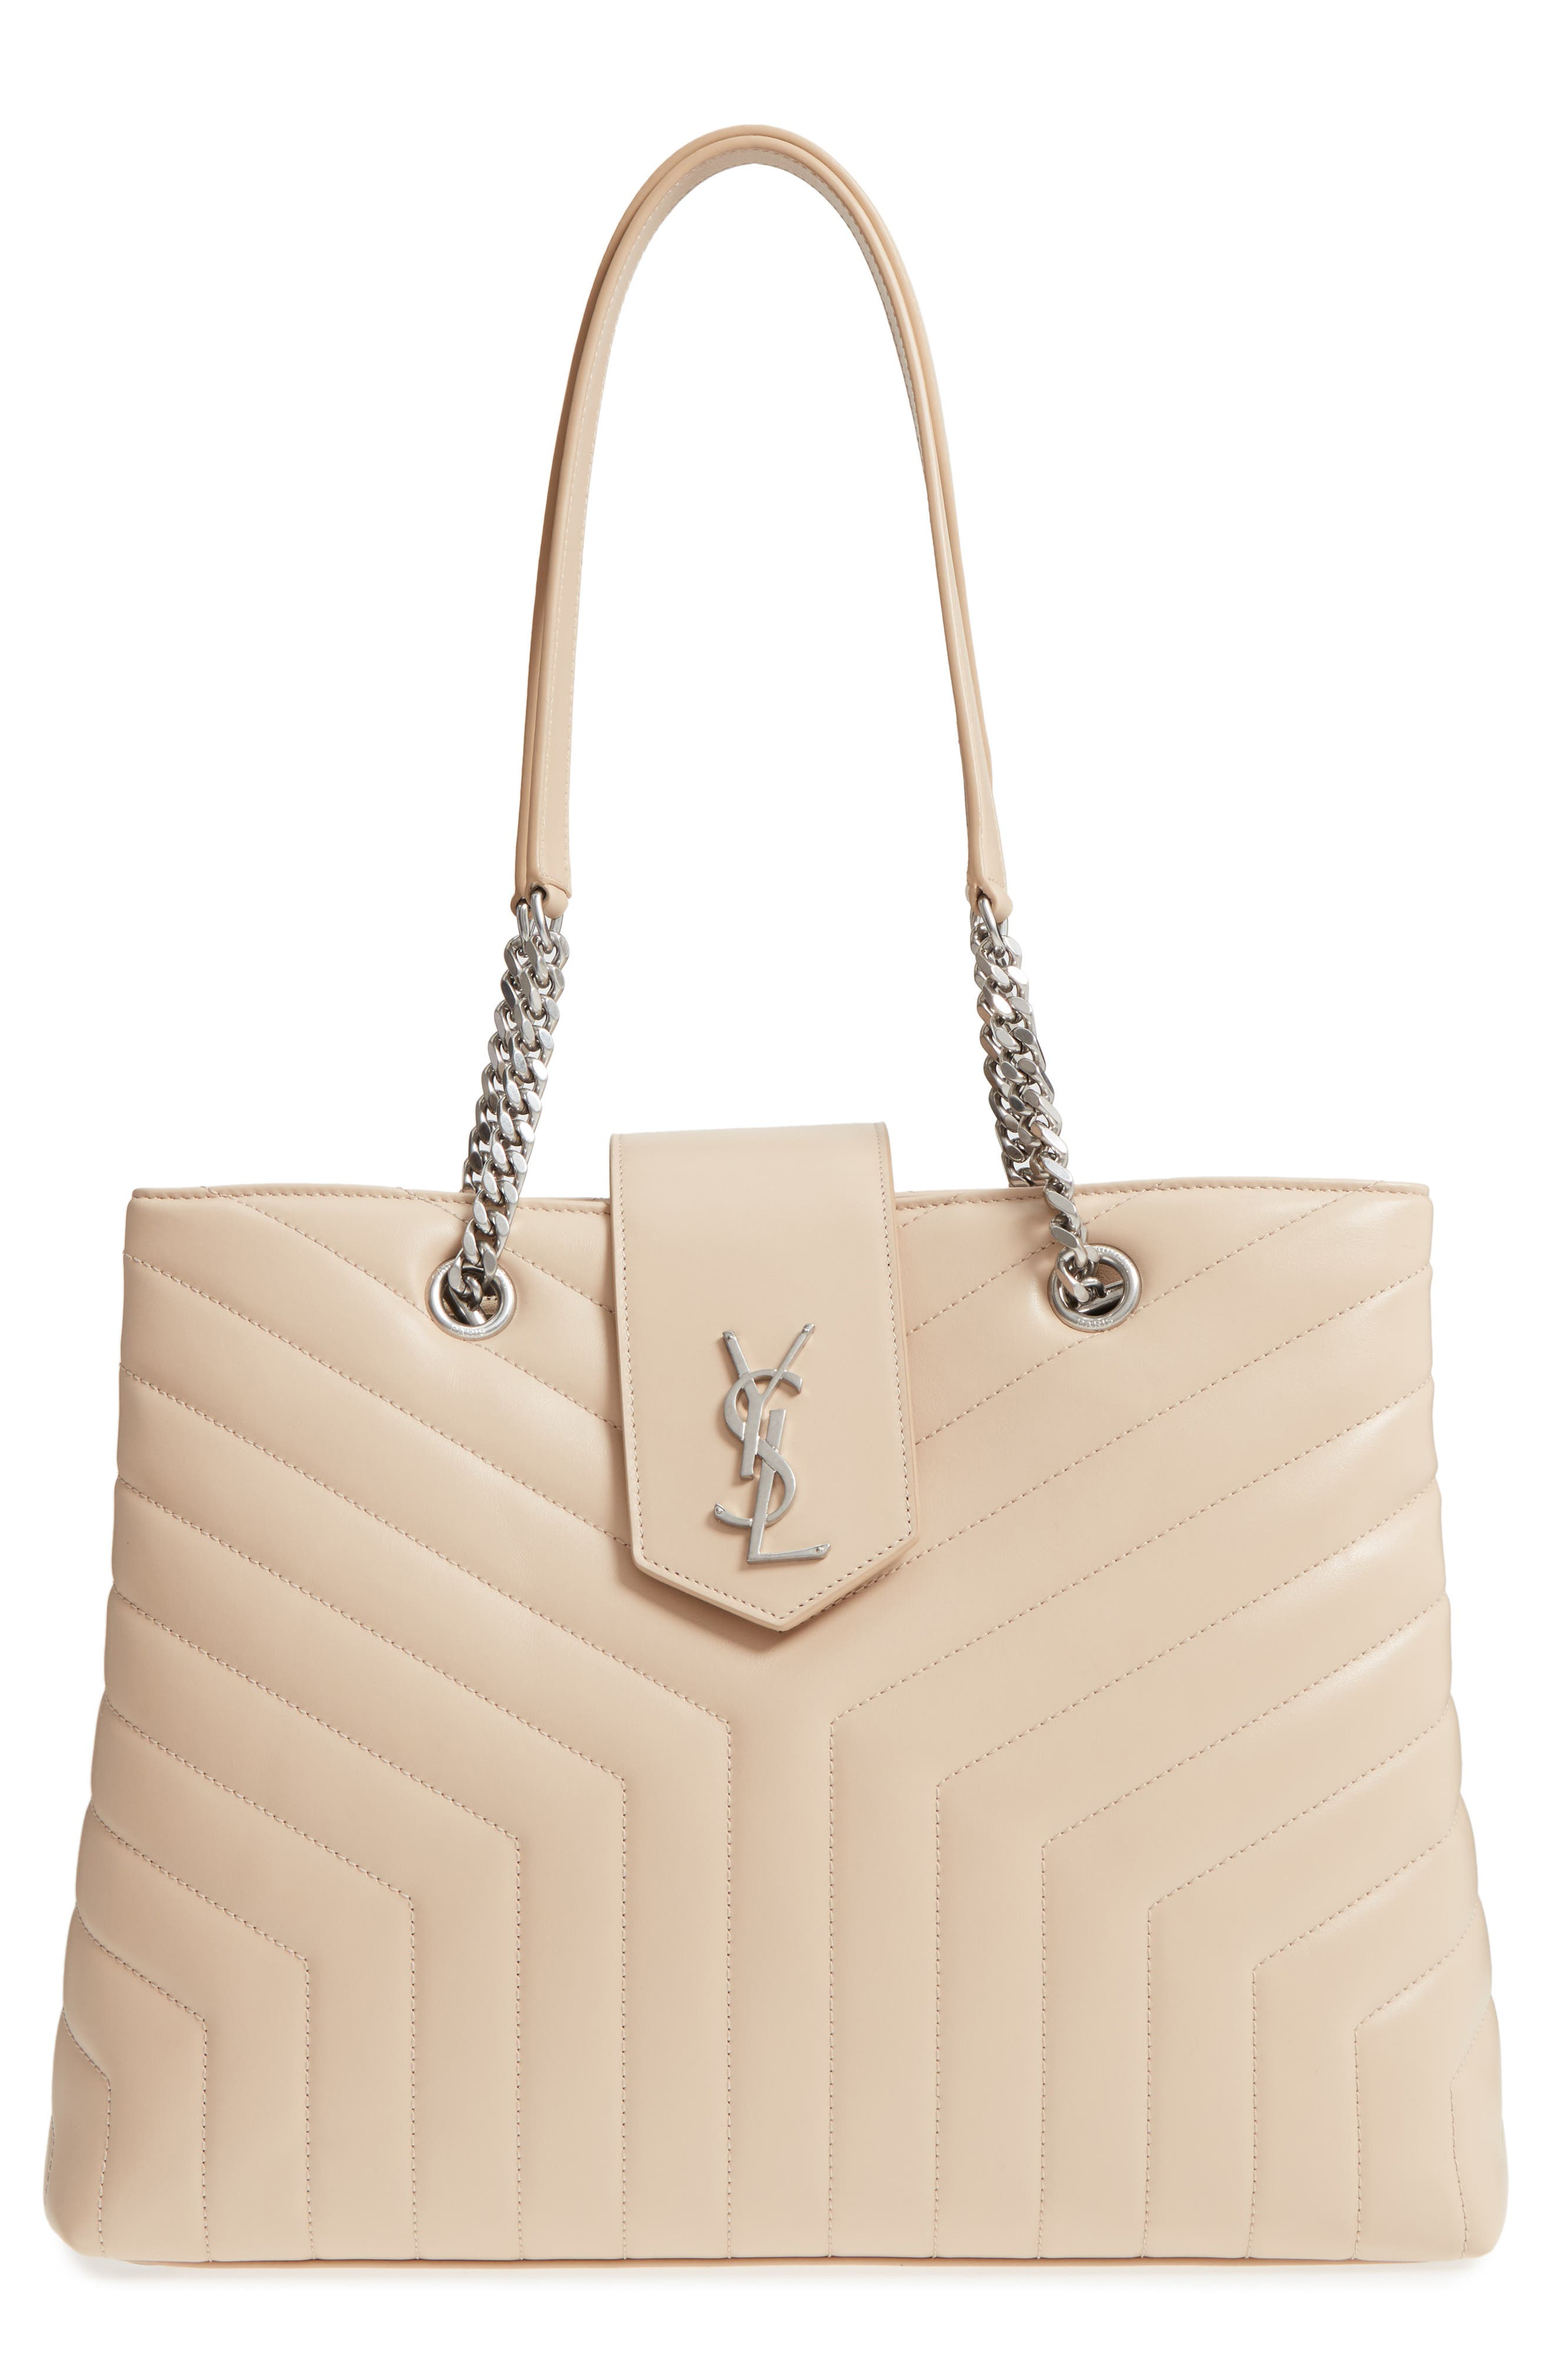 Large Loulou Matelassé Leather Shopper,                             Main thumbnail 1, color,                             Nude Powder/ Nude Powder